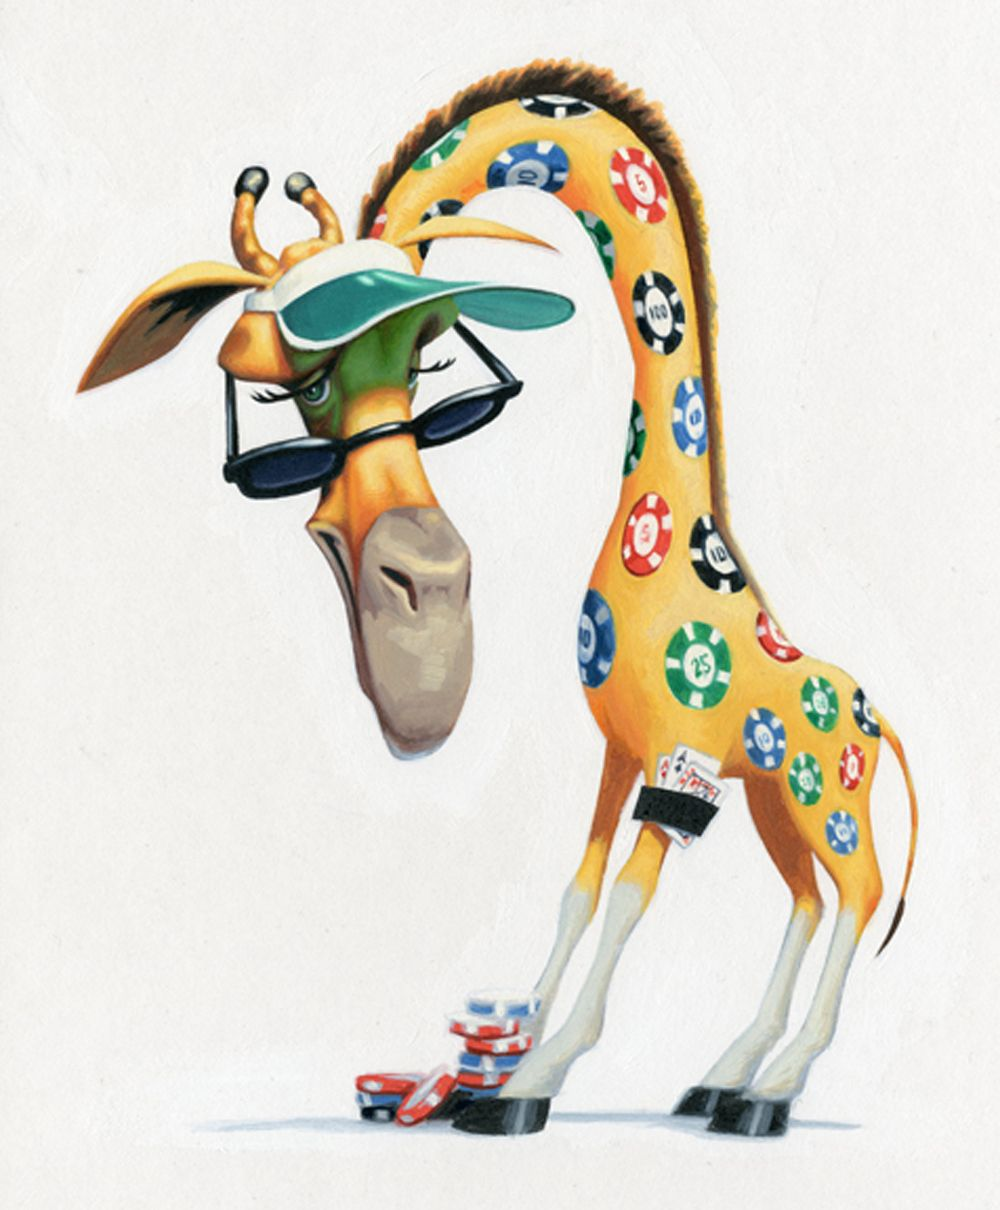 James Bennett→Animal Fun→Drawing, Illustration, Painting on Behance